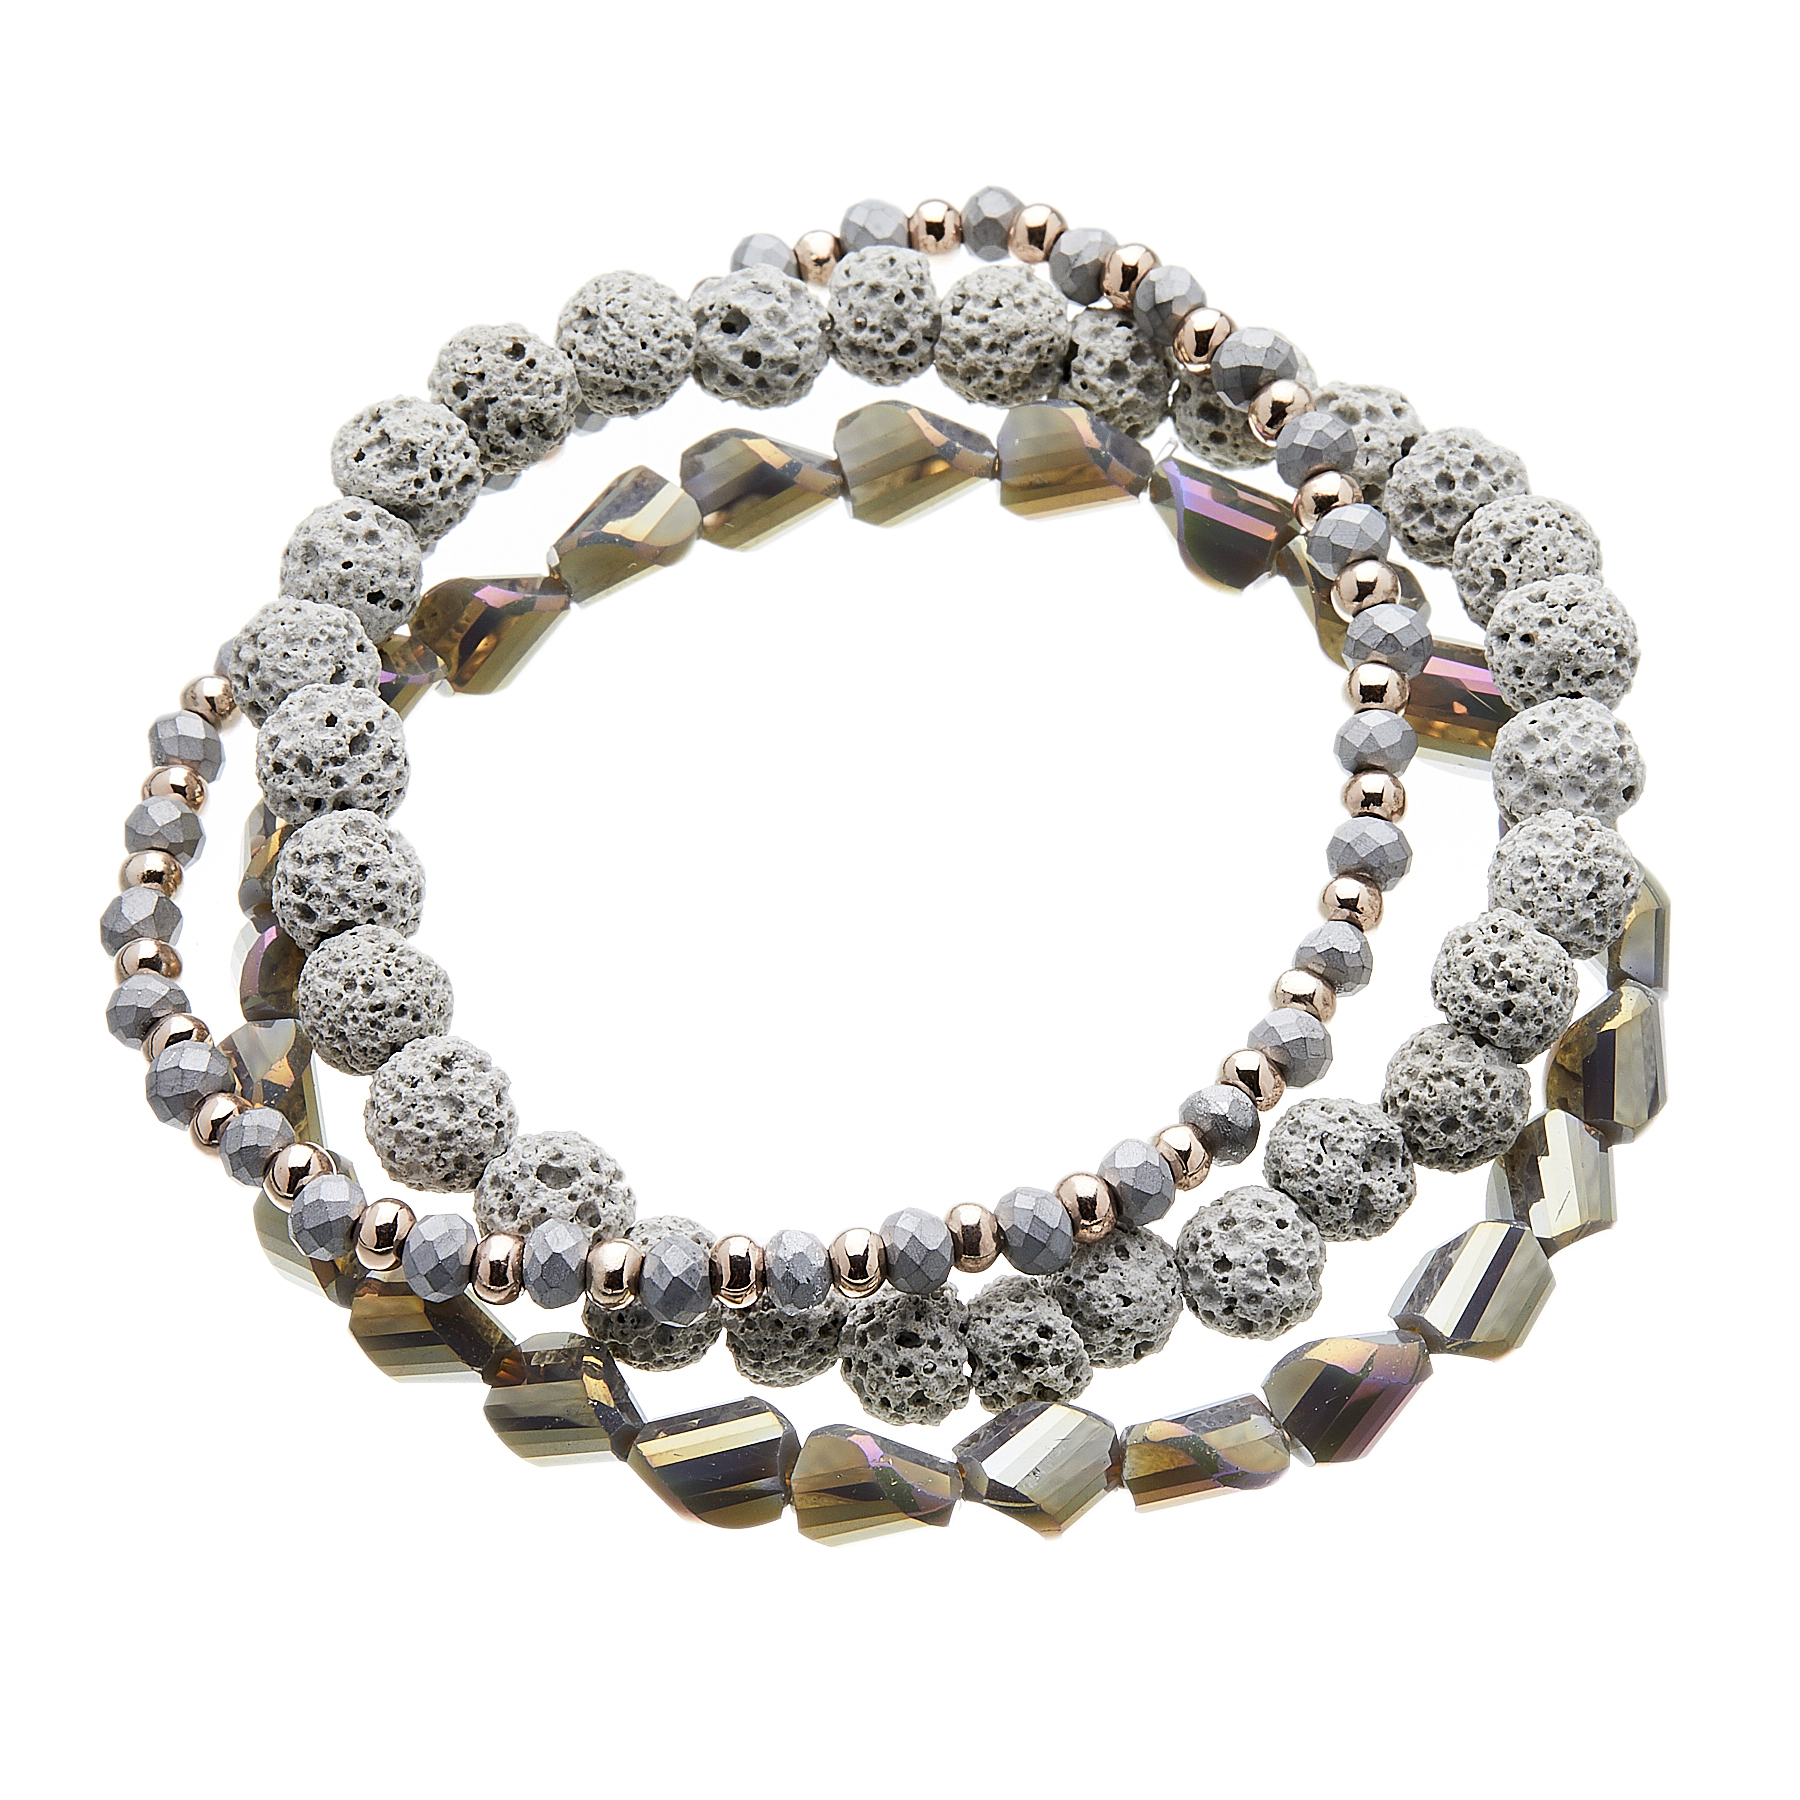 Three Bracelets with grey and champagne gold beads - Yori G16-11-12